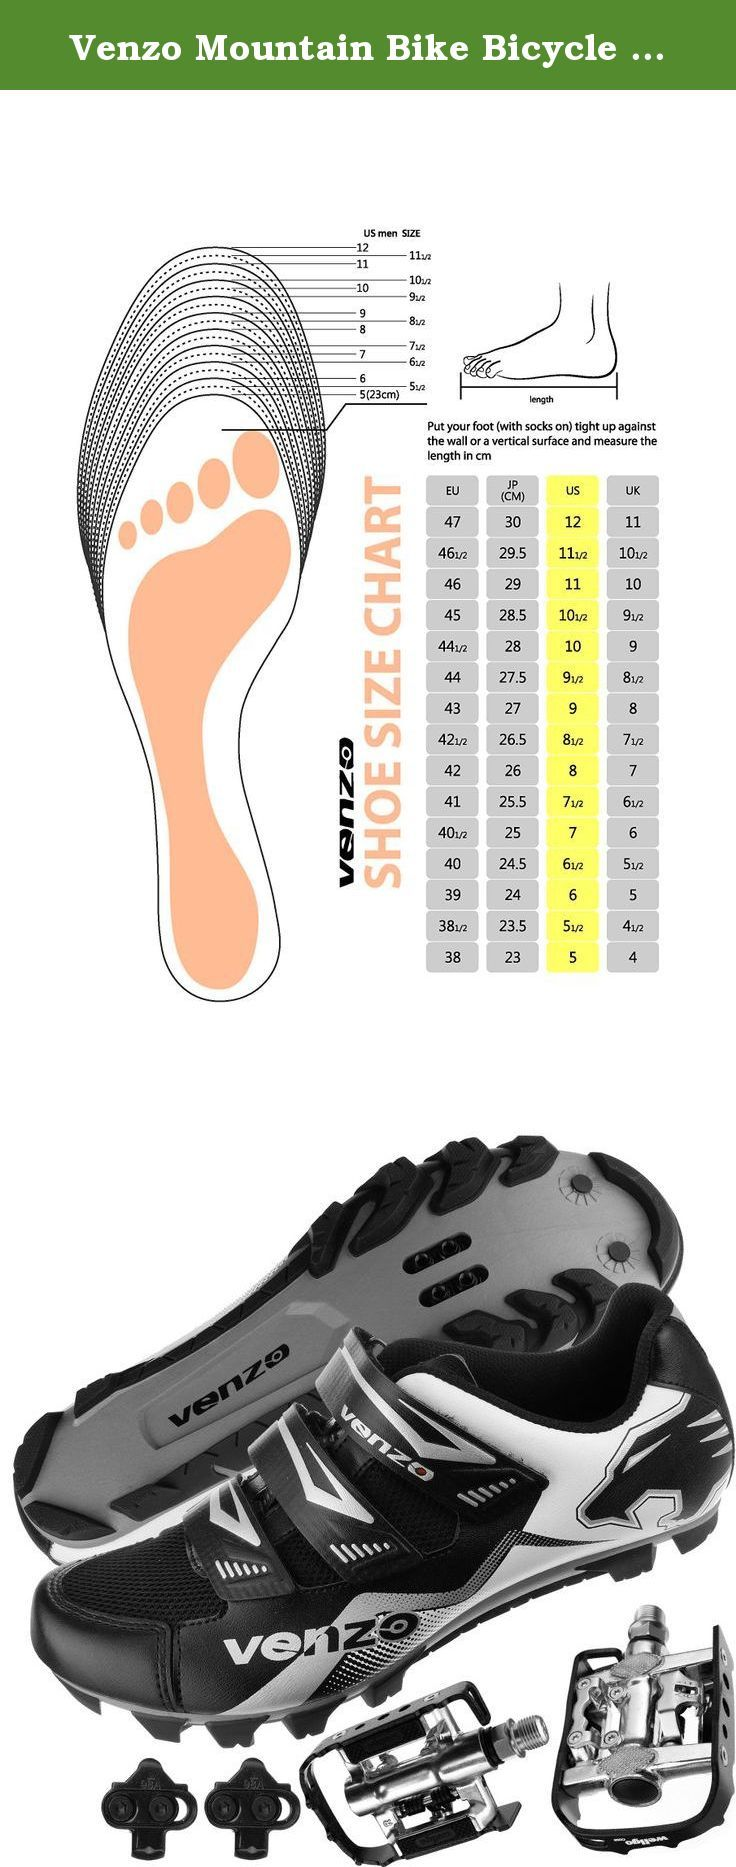 Venzo Mountain Bike Bicycle Cycling Shimano Spd Shoes Multi Use Pedals Size Chart Europe 40 Us Men 6 5 Japanese 24 Cycling Shoes Shoe Feature Shoe Jewelry